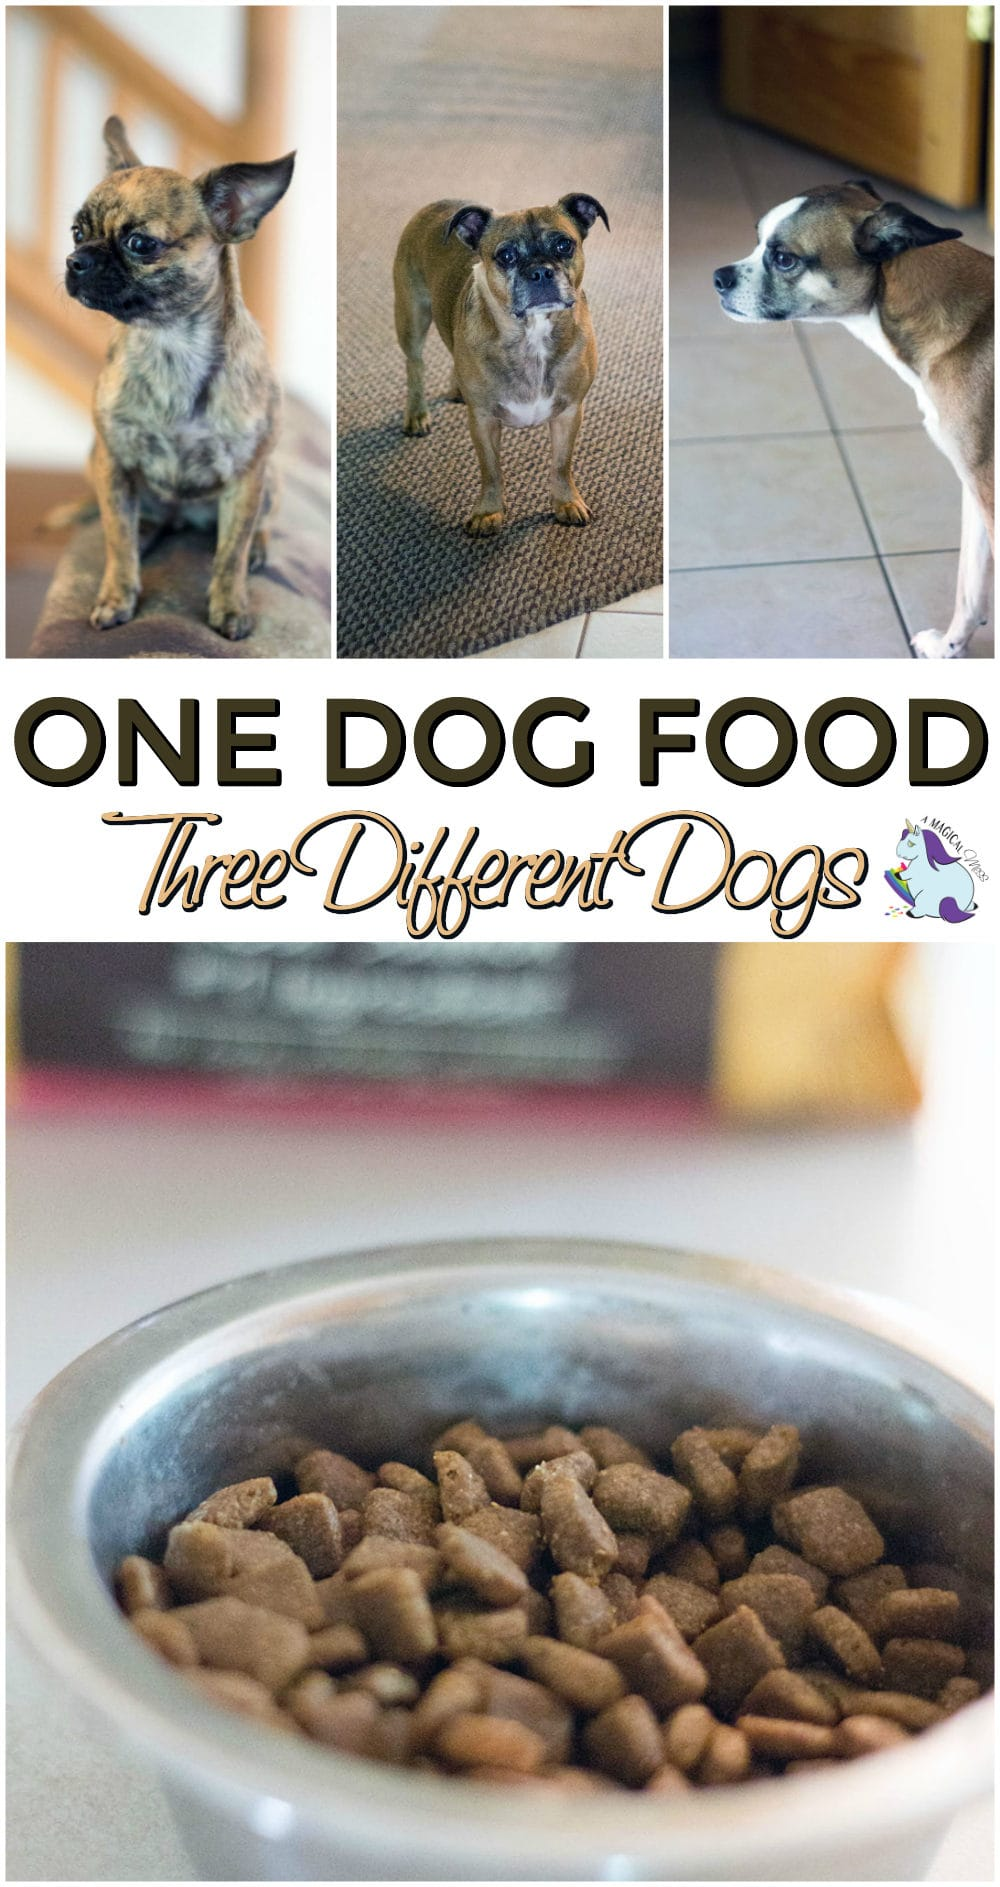 Easy to Find Healthy Dog Foods for Multiple Dogs